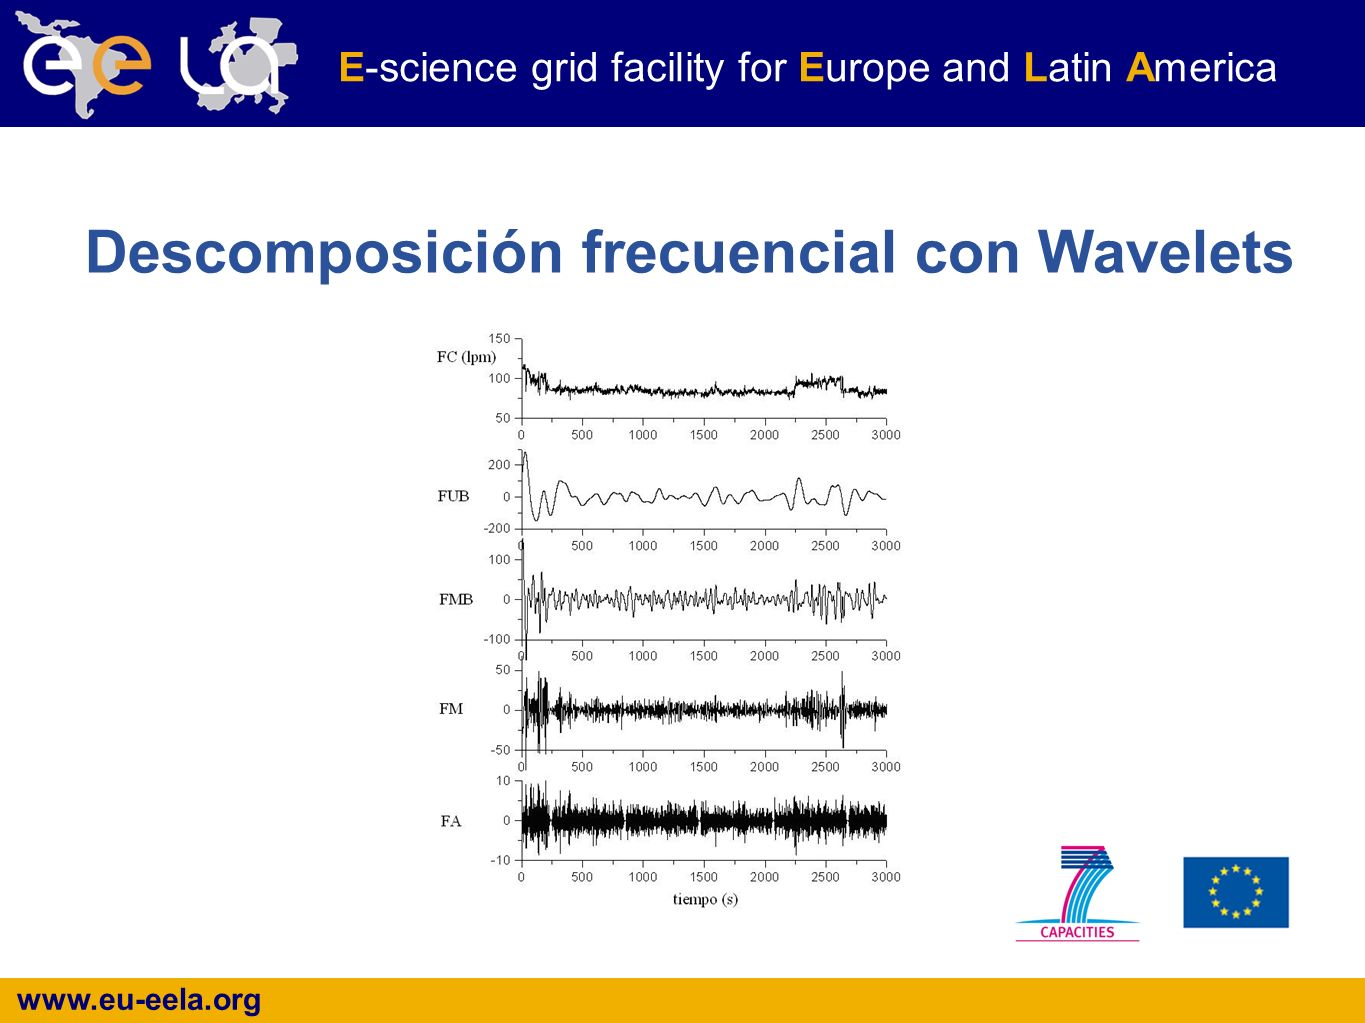 www.eu-eela.org E-science grid facility for Europe and Latin America Descomposición frecuencial con Wavelets